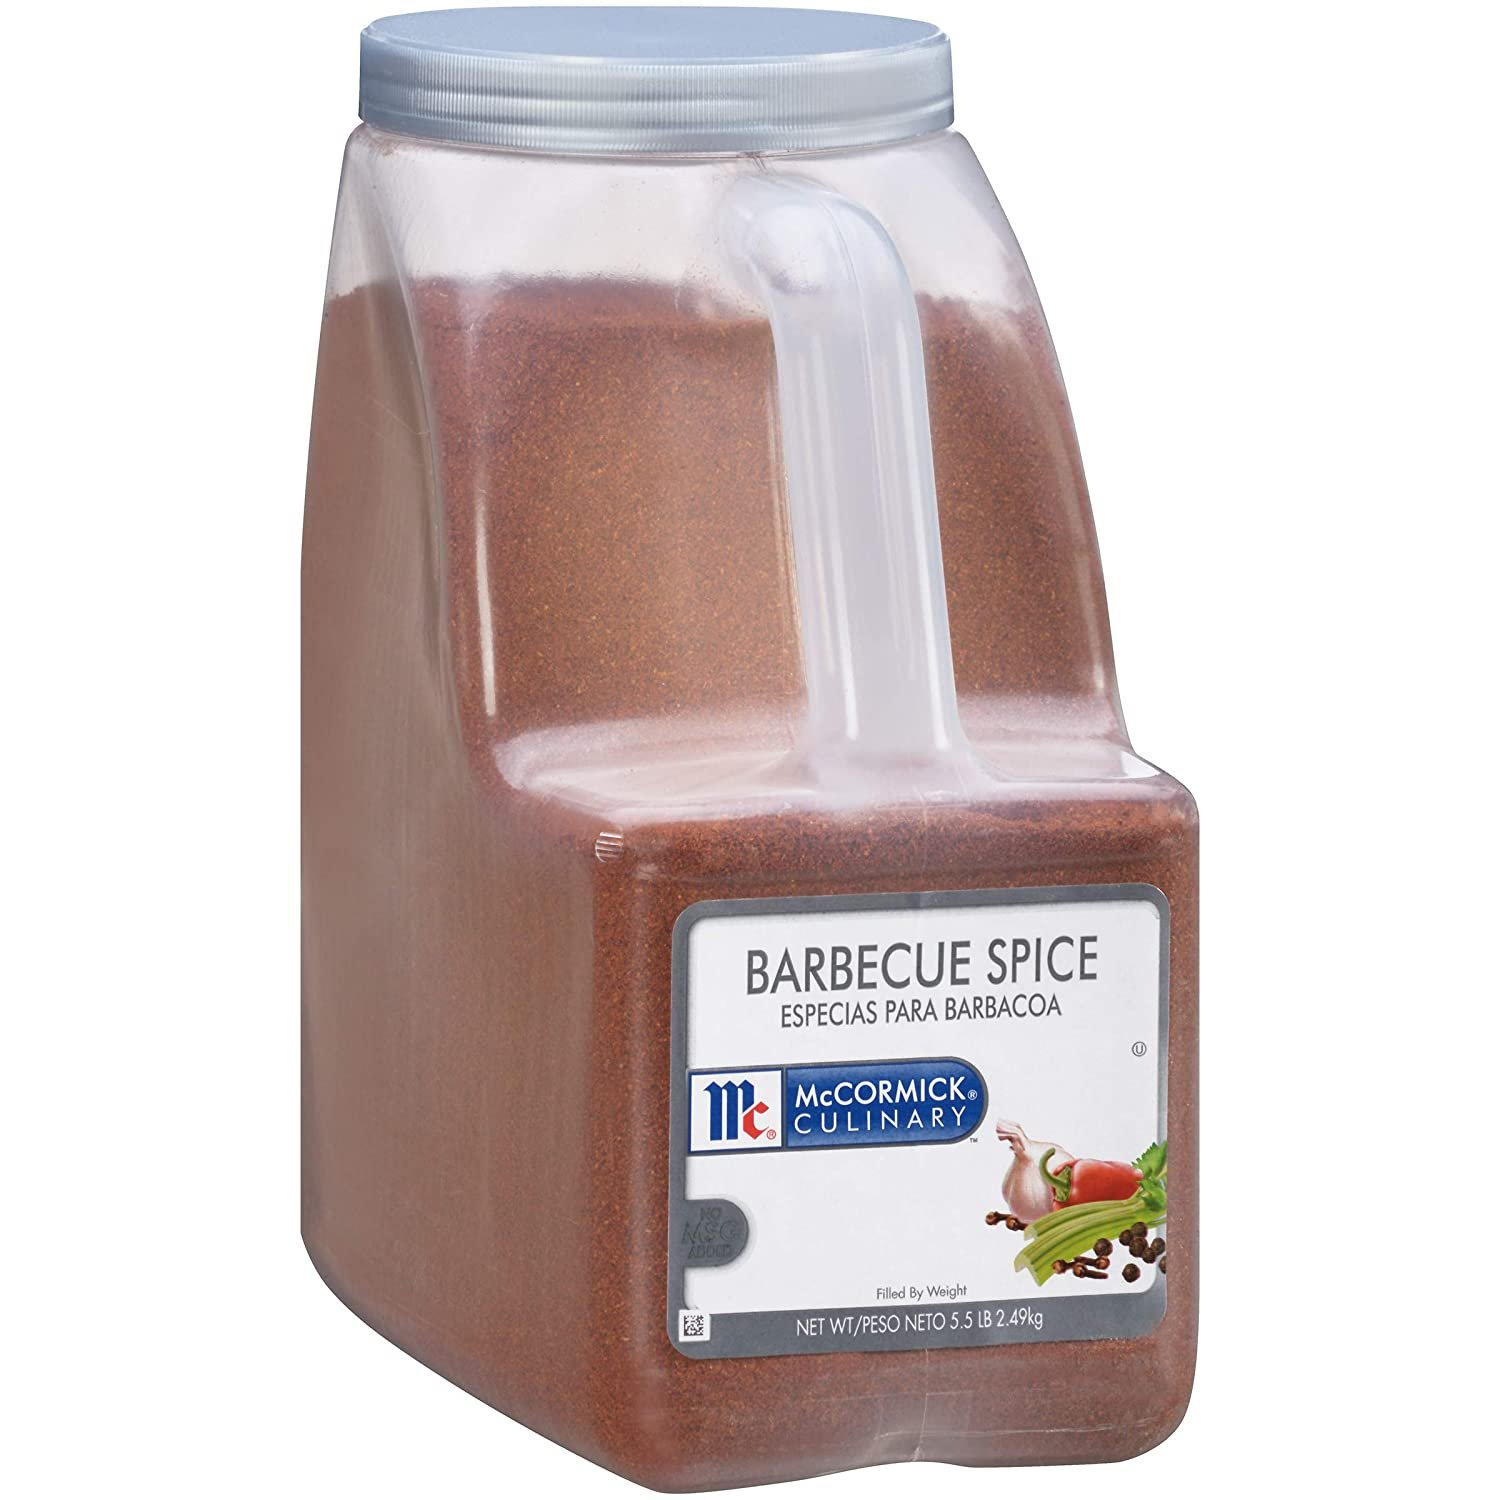 McCormick Culinary For Chefs Barbecue Spice, 5.5 lbs a m